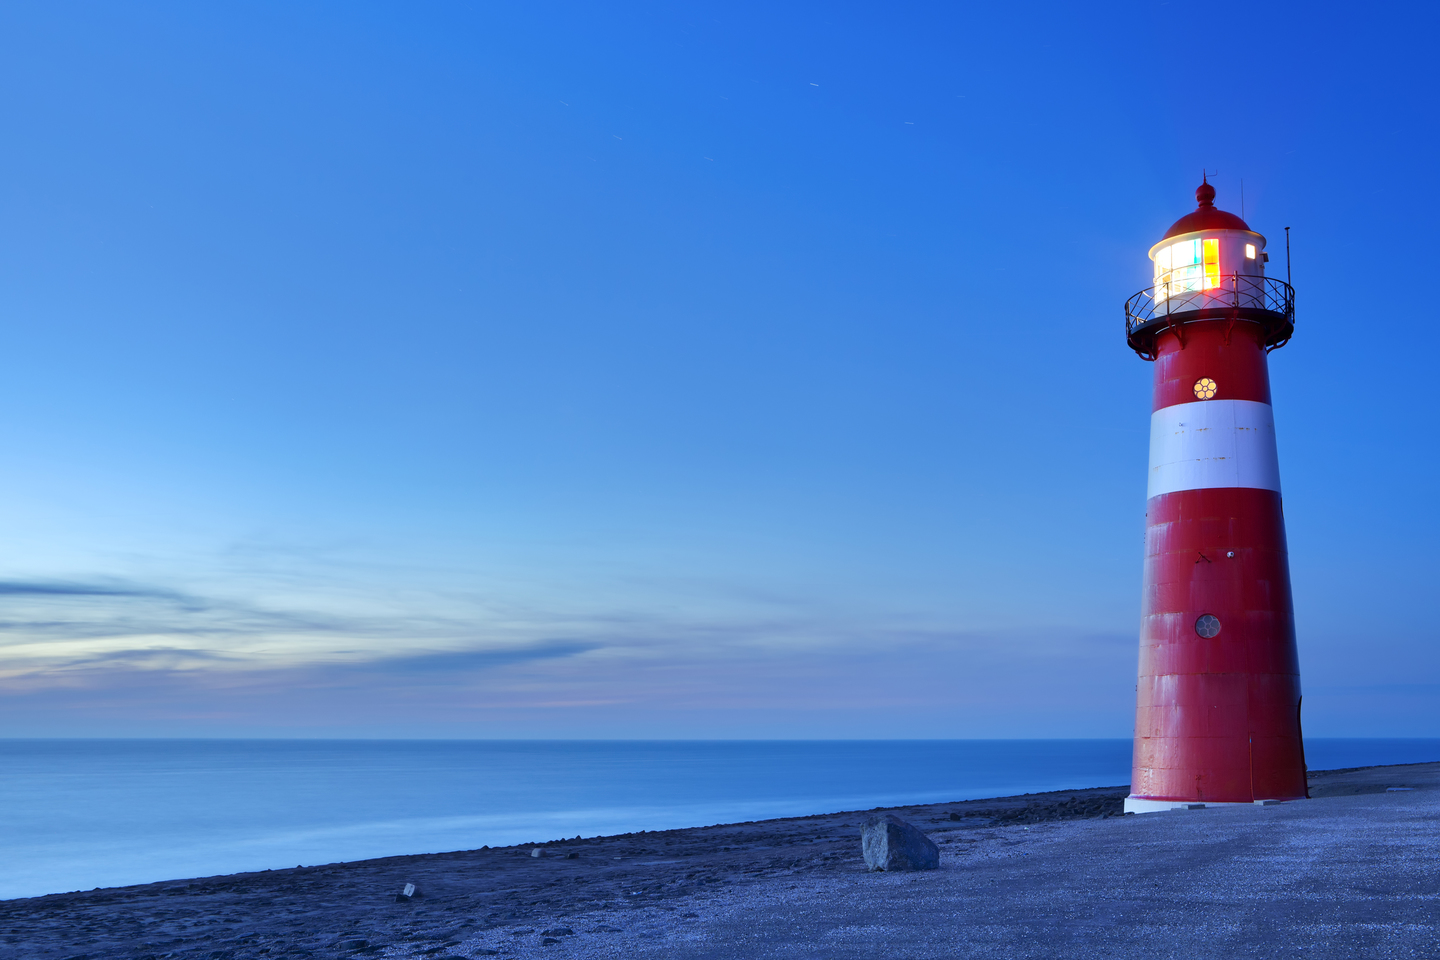 Red and white lighthouse on the sea at sunset